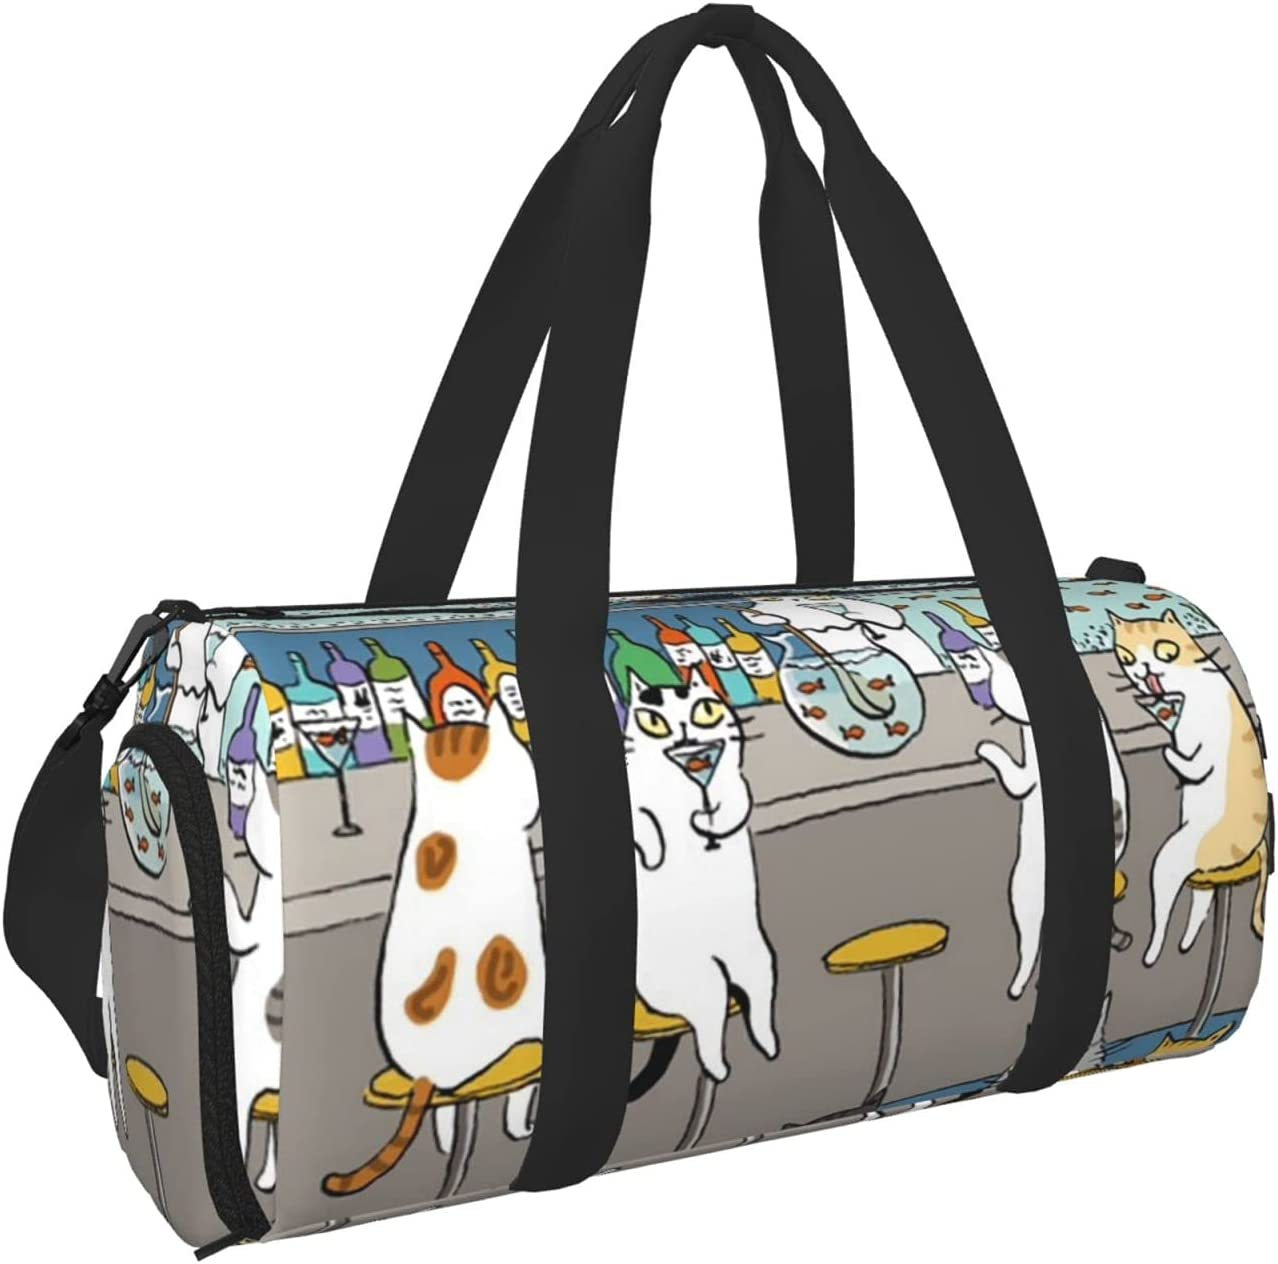 Cat in the bar Award Gym Bag for Women Duffel and Travel Men Yoga List price